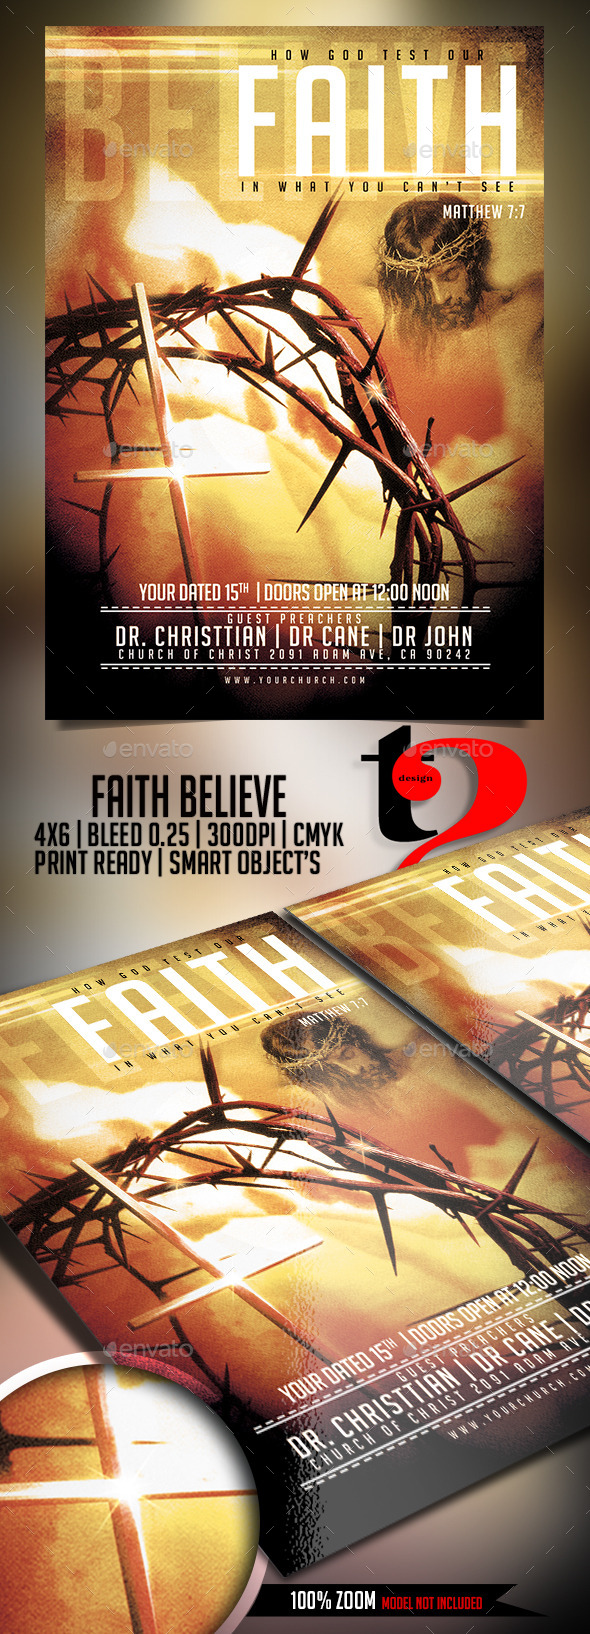 Faith Believe - Church Flyer Template - Church Flyers